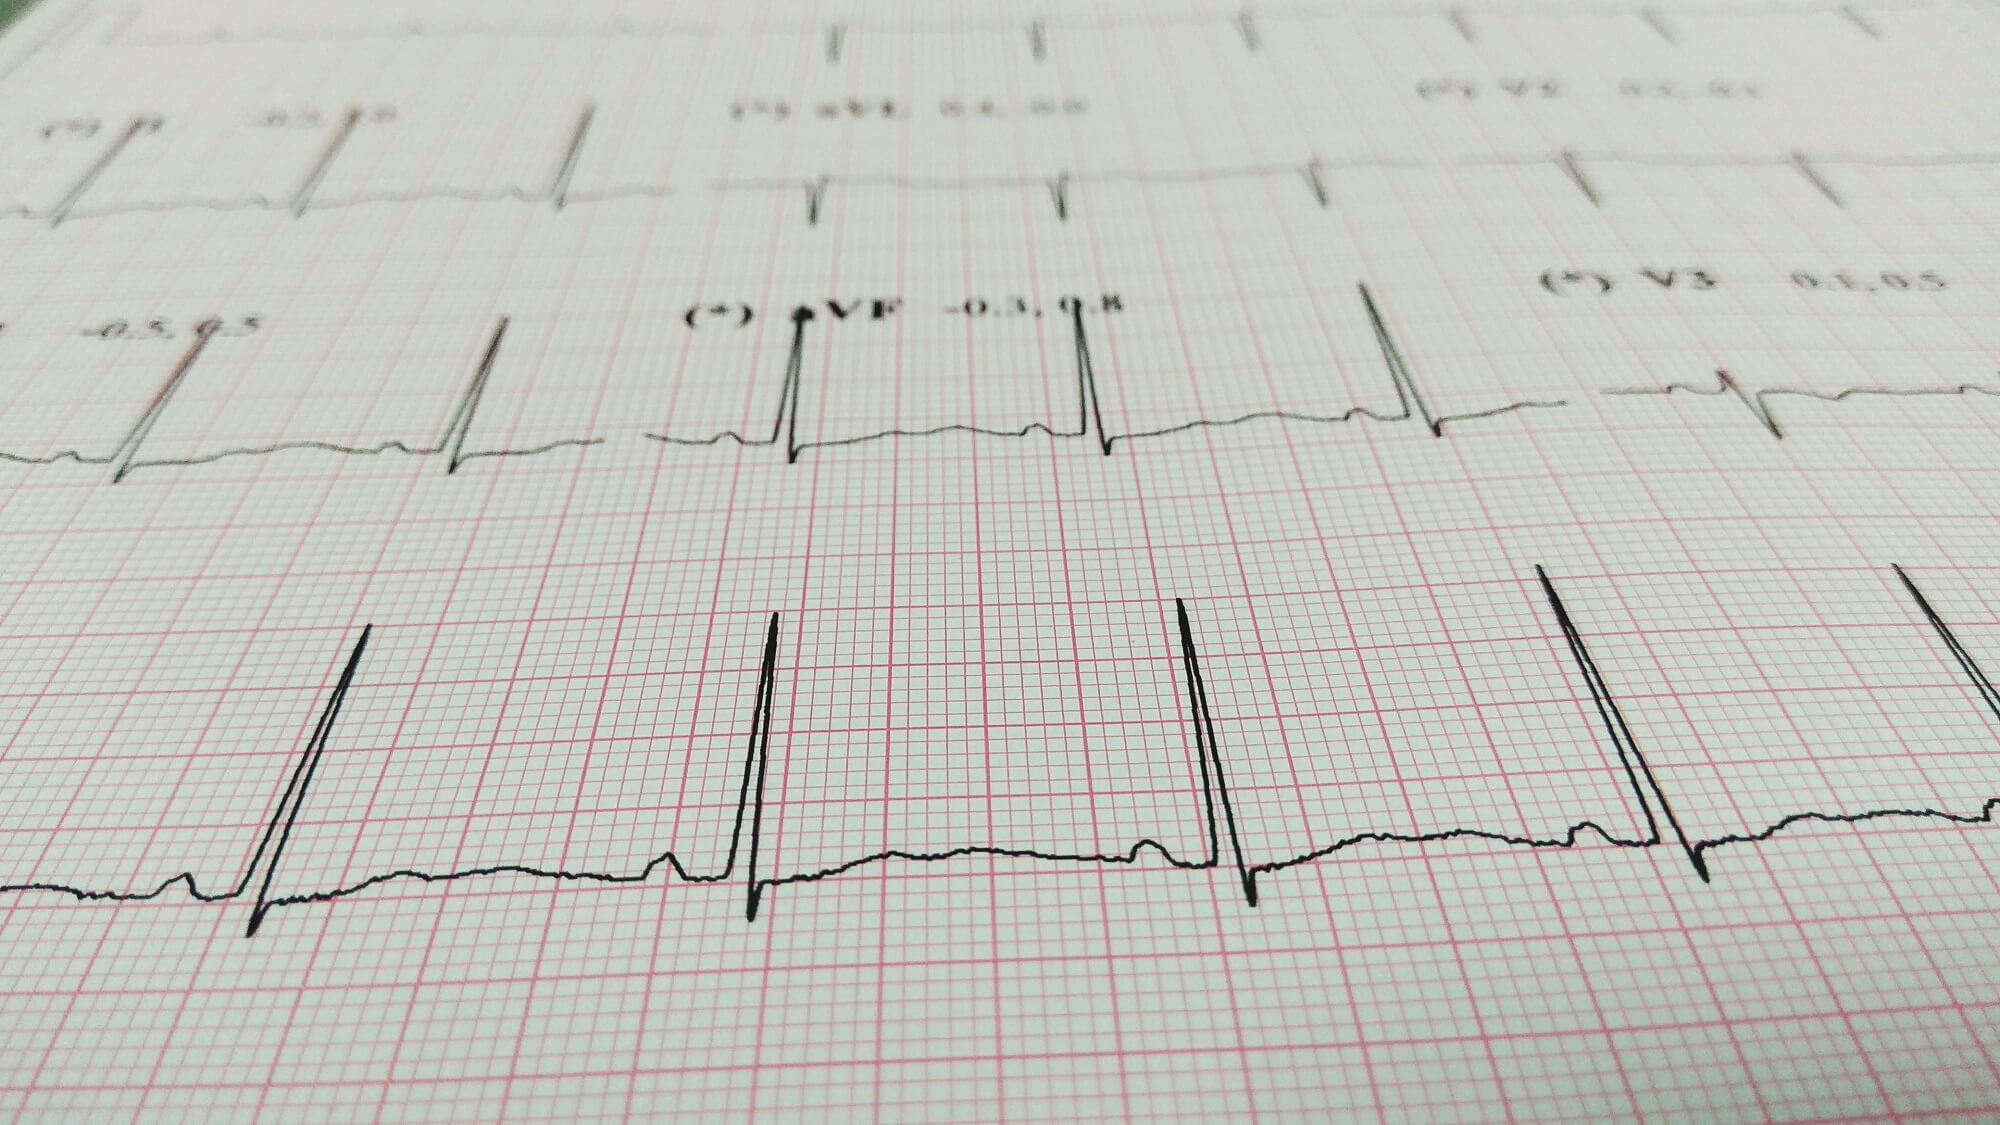 Artificial Intelligence Can Use Routine ECGs to Identify Heart Disease